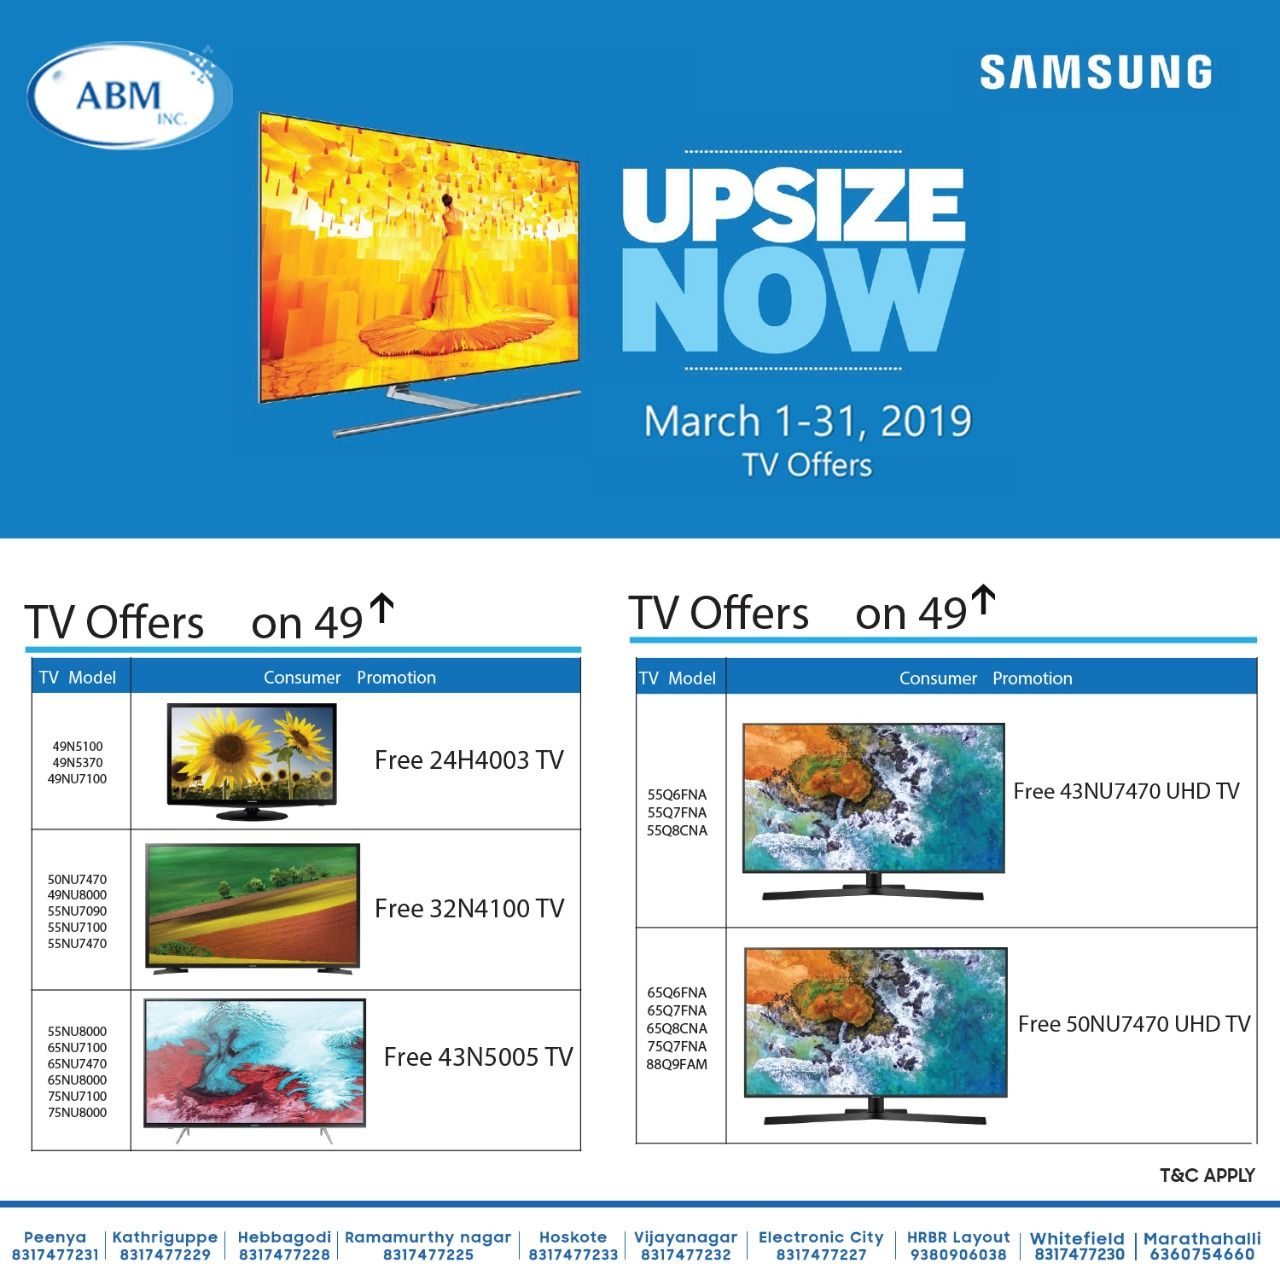 Samsung Upsize Now offer is back again! Exciting TV offers